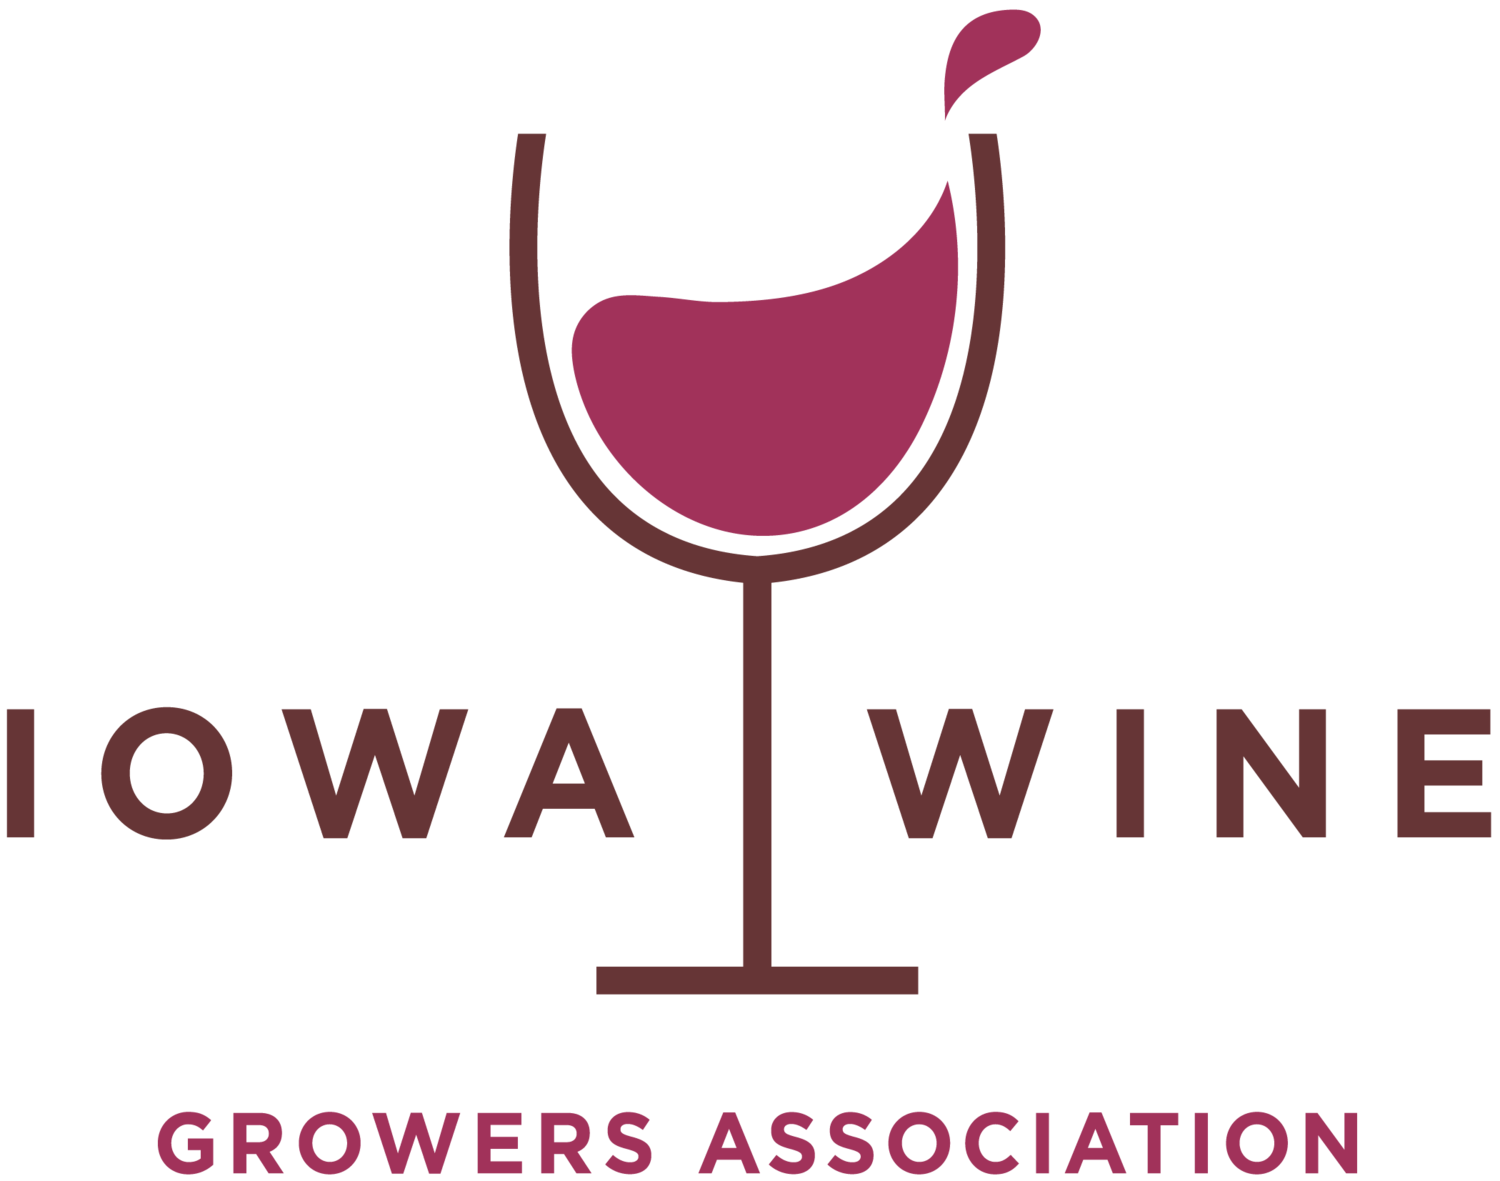 Iowa-Wine-RGB-2C-Primary.png